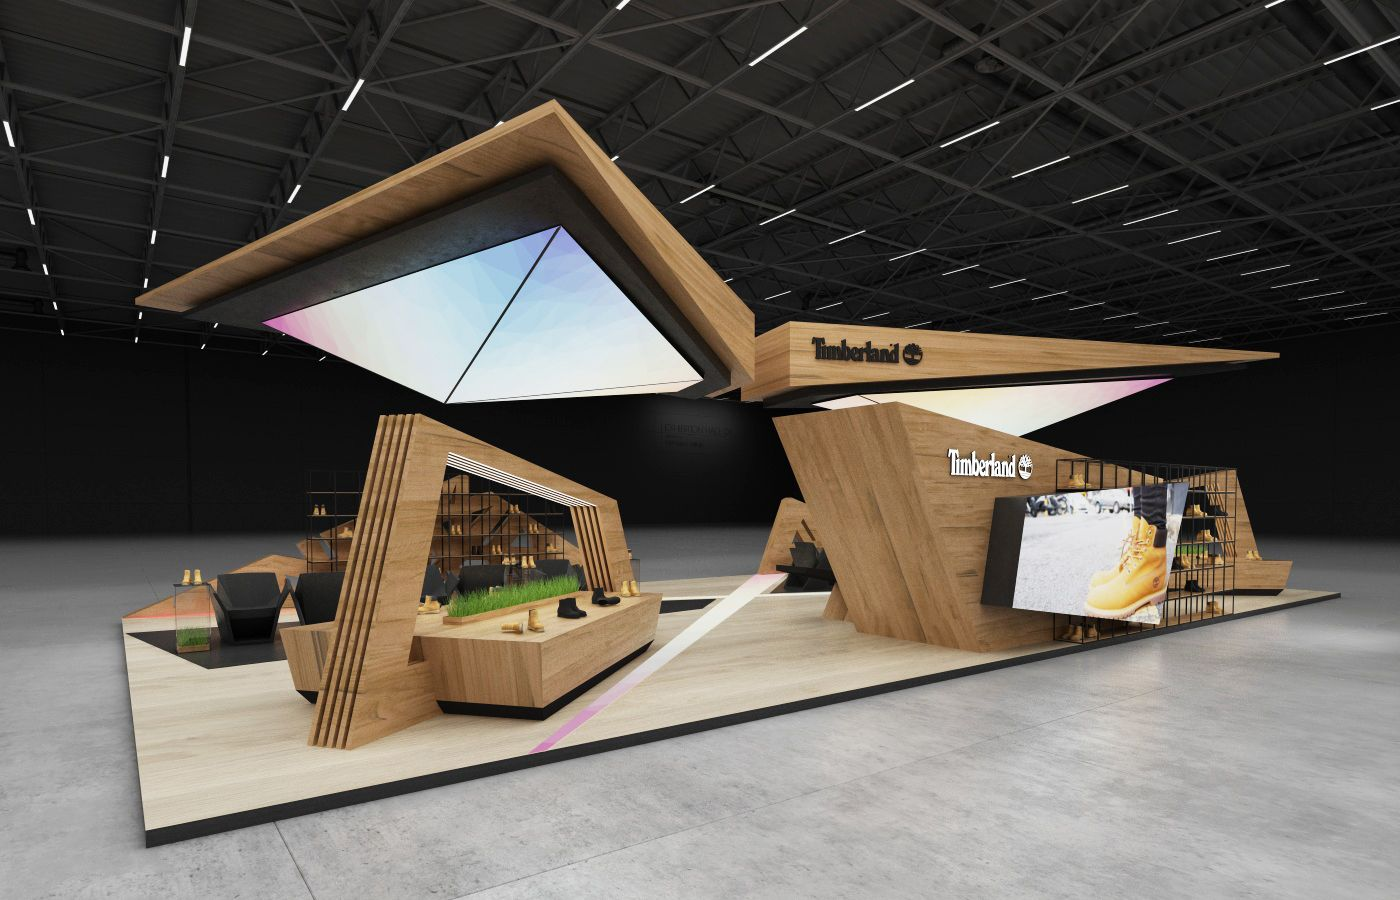 Exhibition Stand Design Concepts : Design concept of exhibition stand for timberland sq m